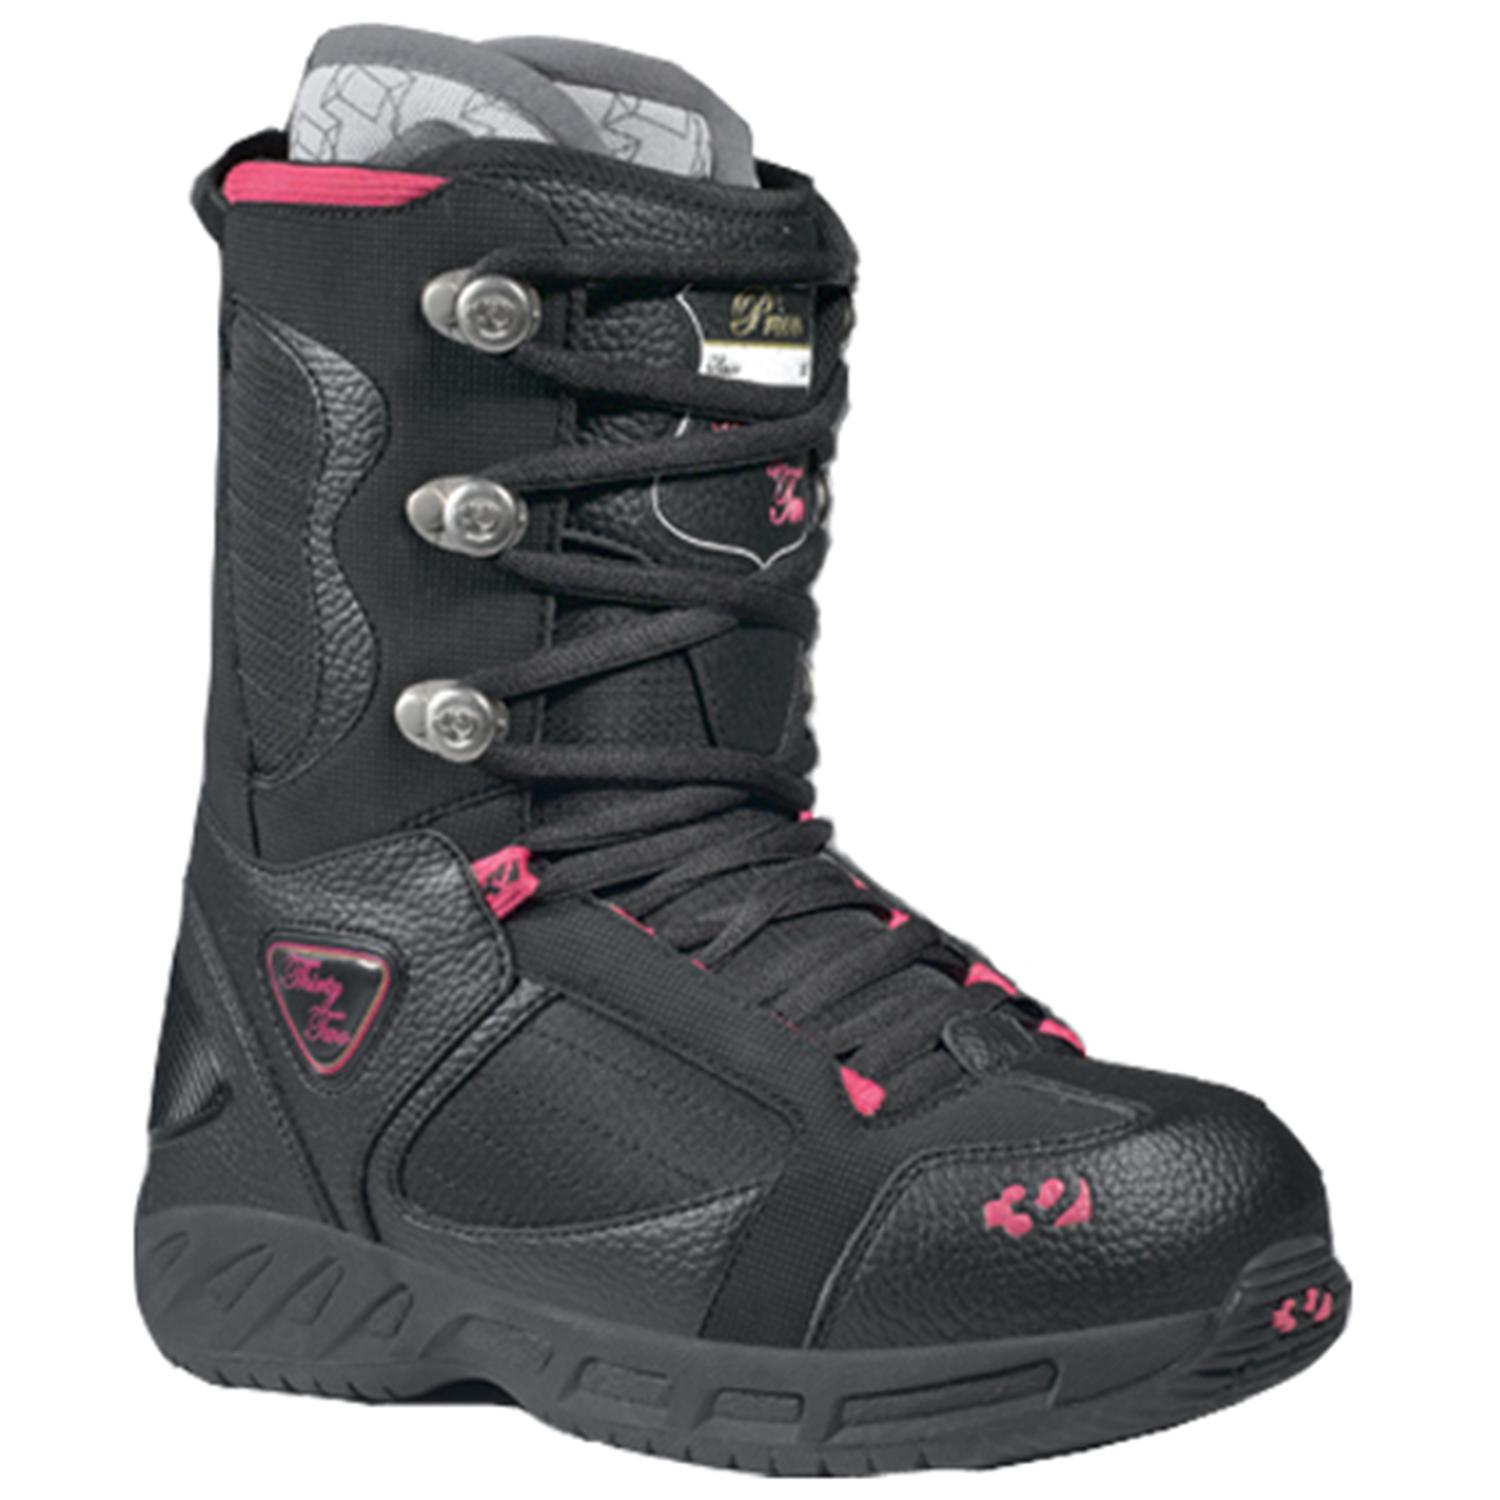 32 thirty two prion snowboard boots s 2006 evo